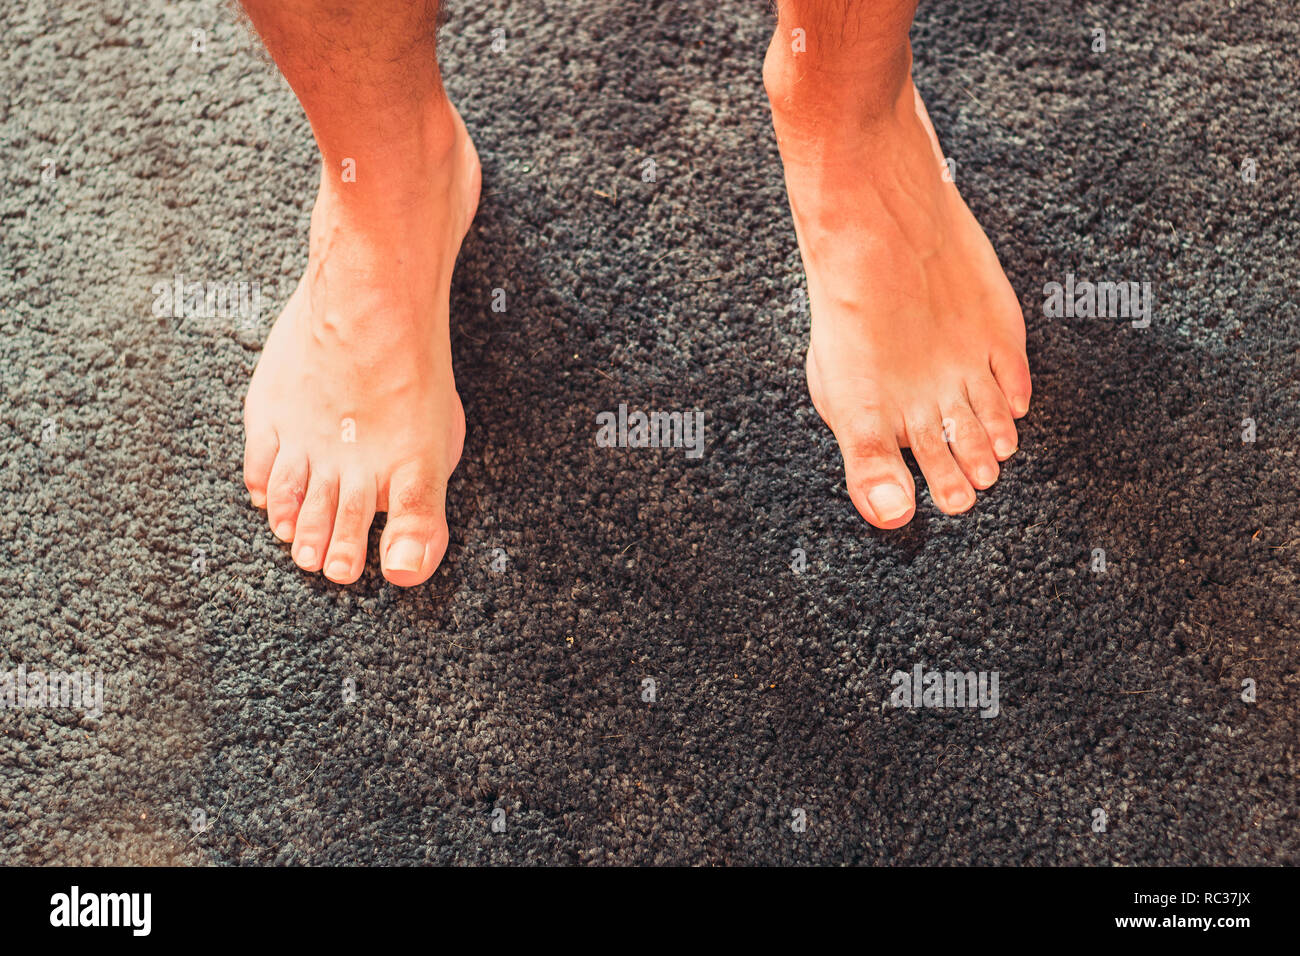 Photo of a human foot - Stock Image